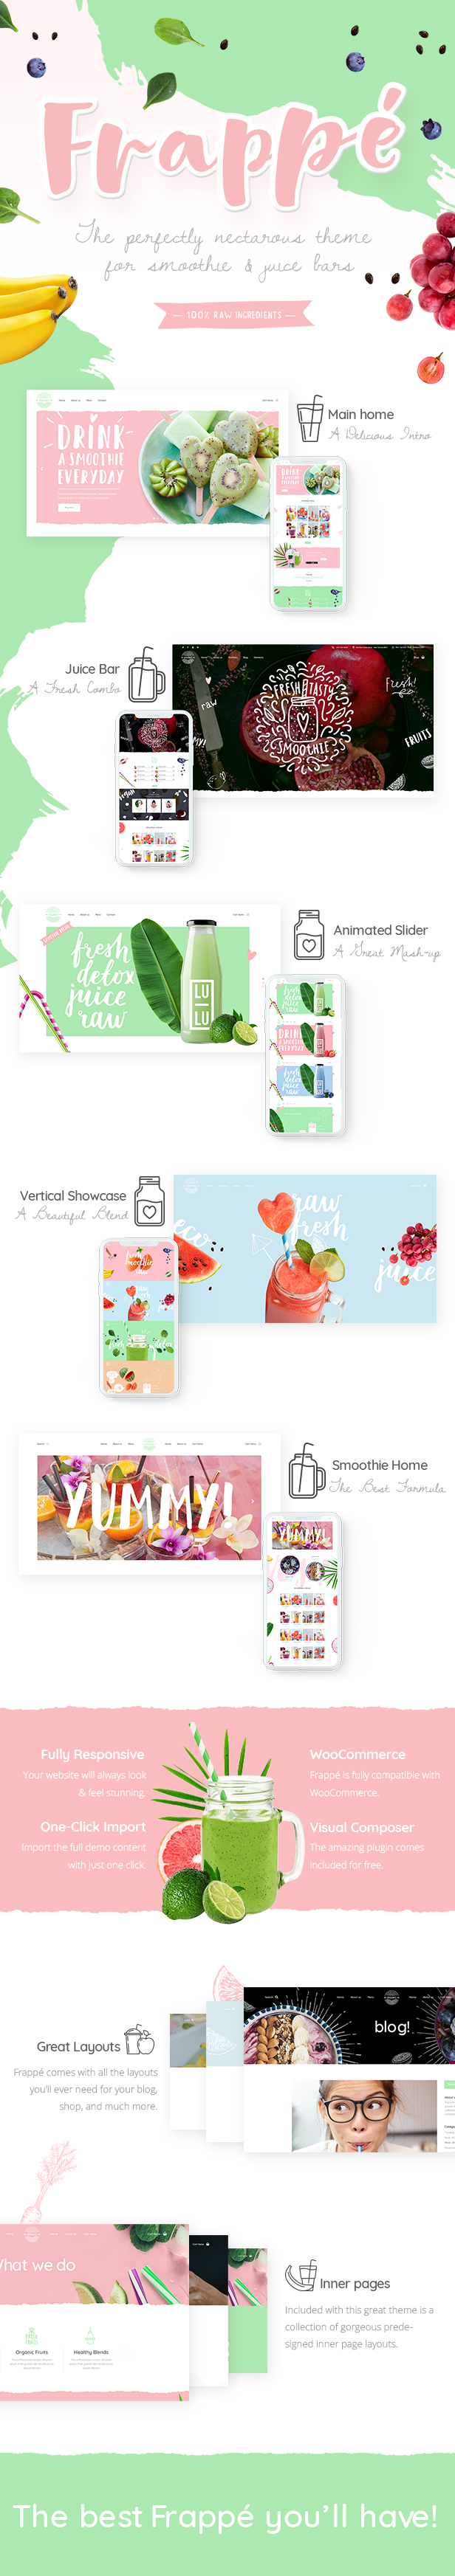 Frappé - A Smoothie and Organic Juice Bar Theme